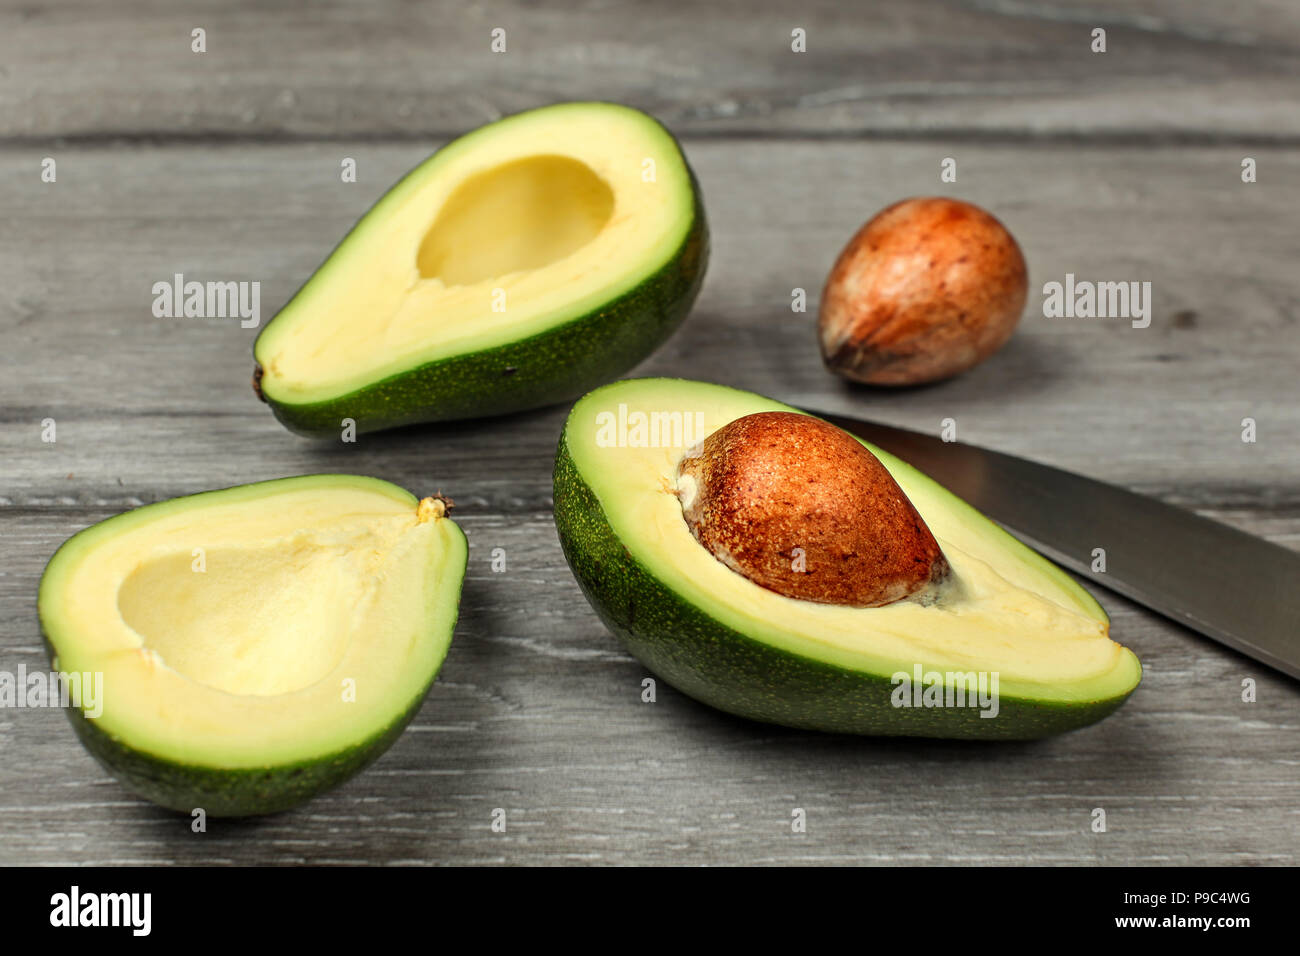 Avocado Pit Cut In Half Stock Photos Avocadoseeddiagram1 Two Seeds And Chefs Knife On Gray Wood Desk